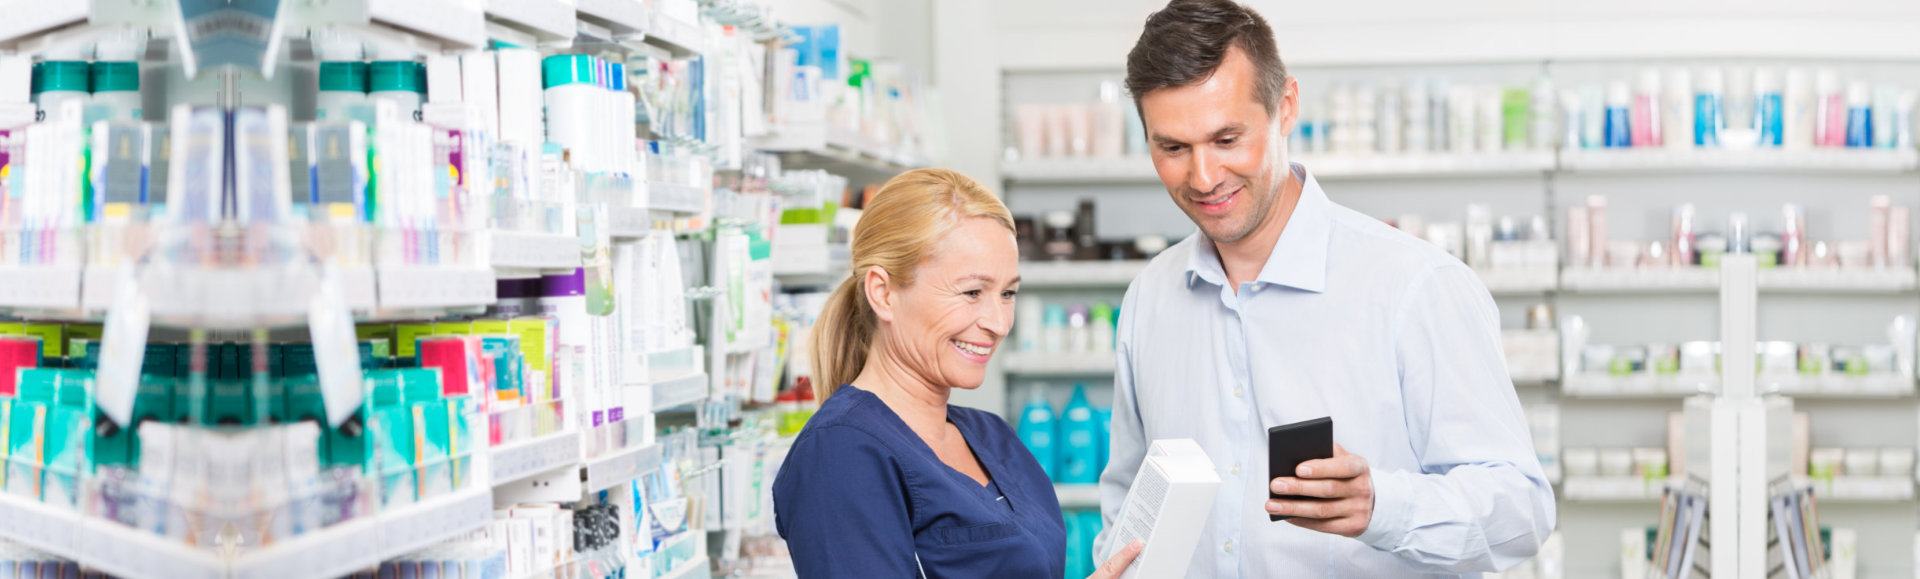 pharmacist assisting patient in buying medicines